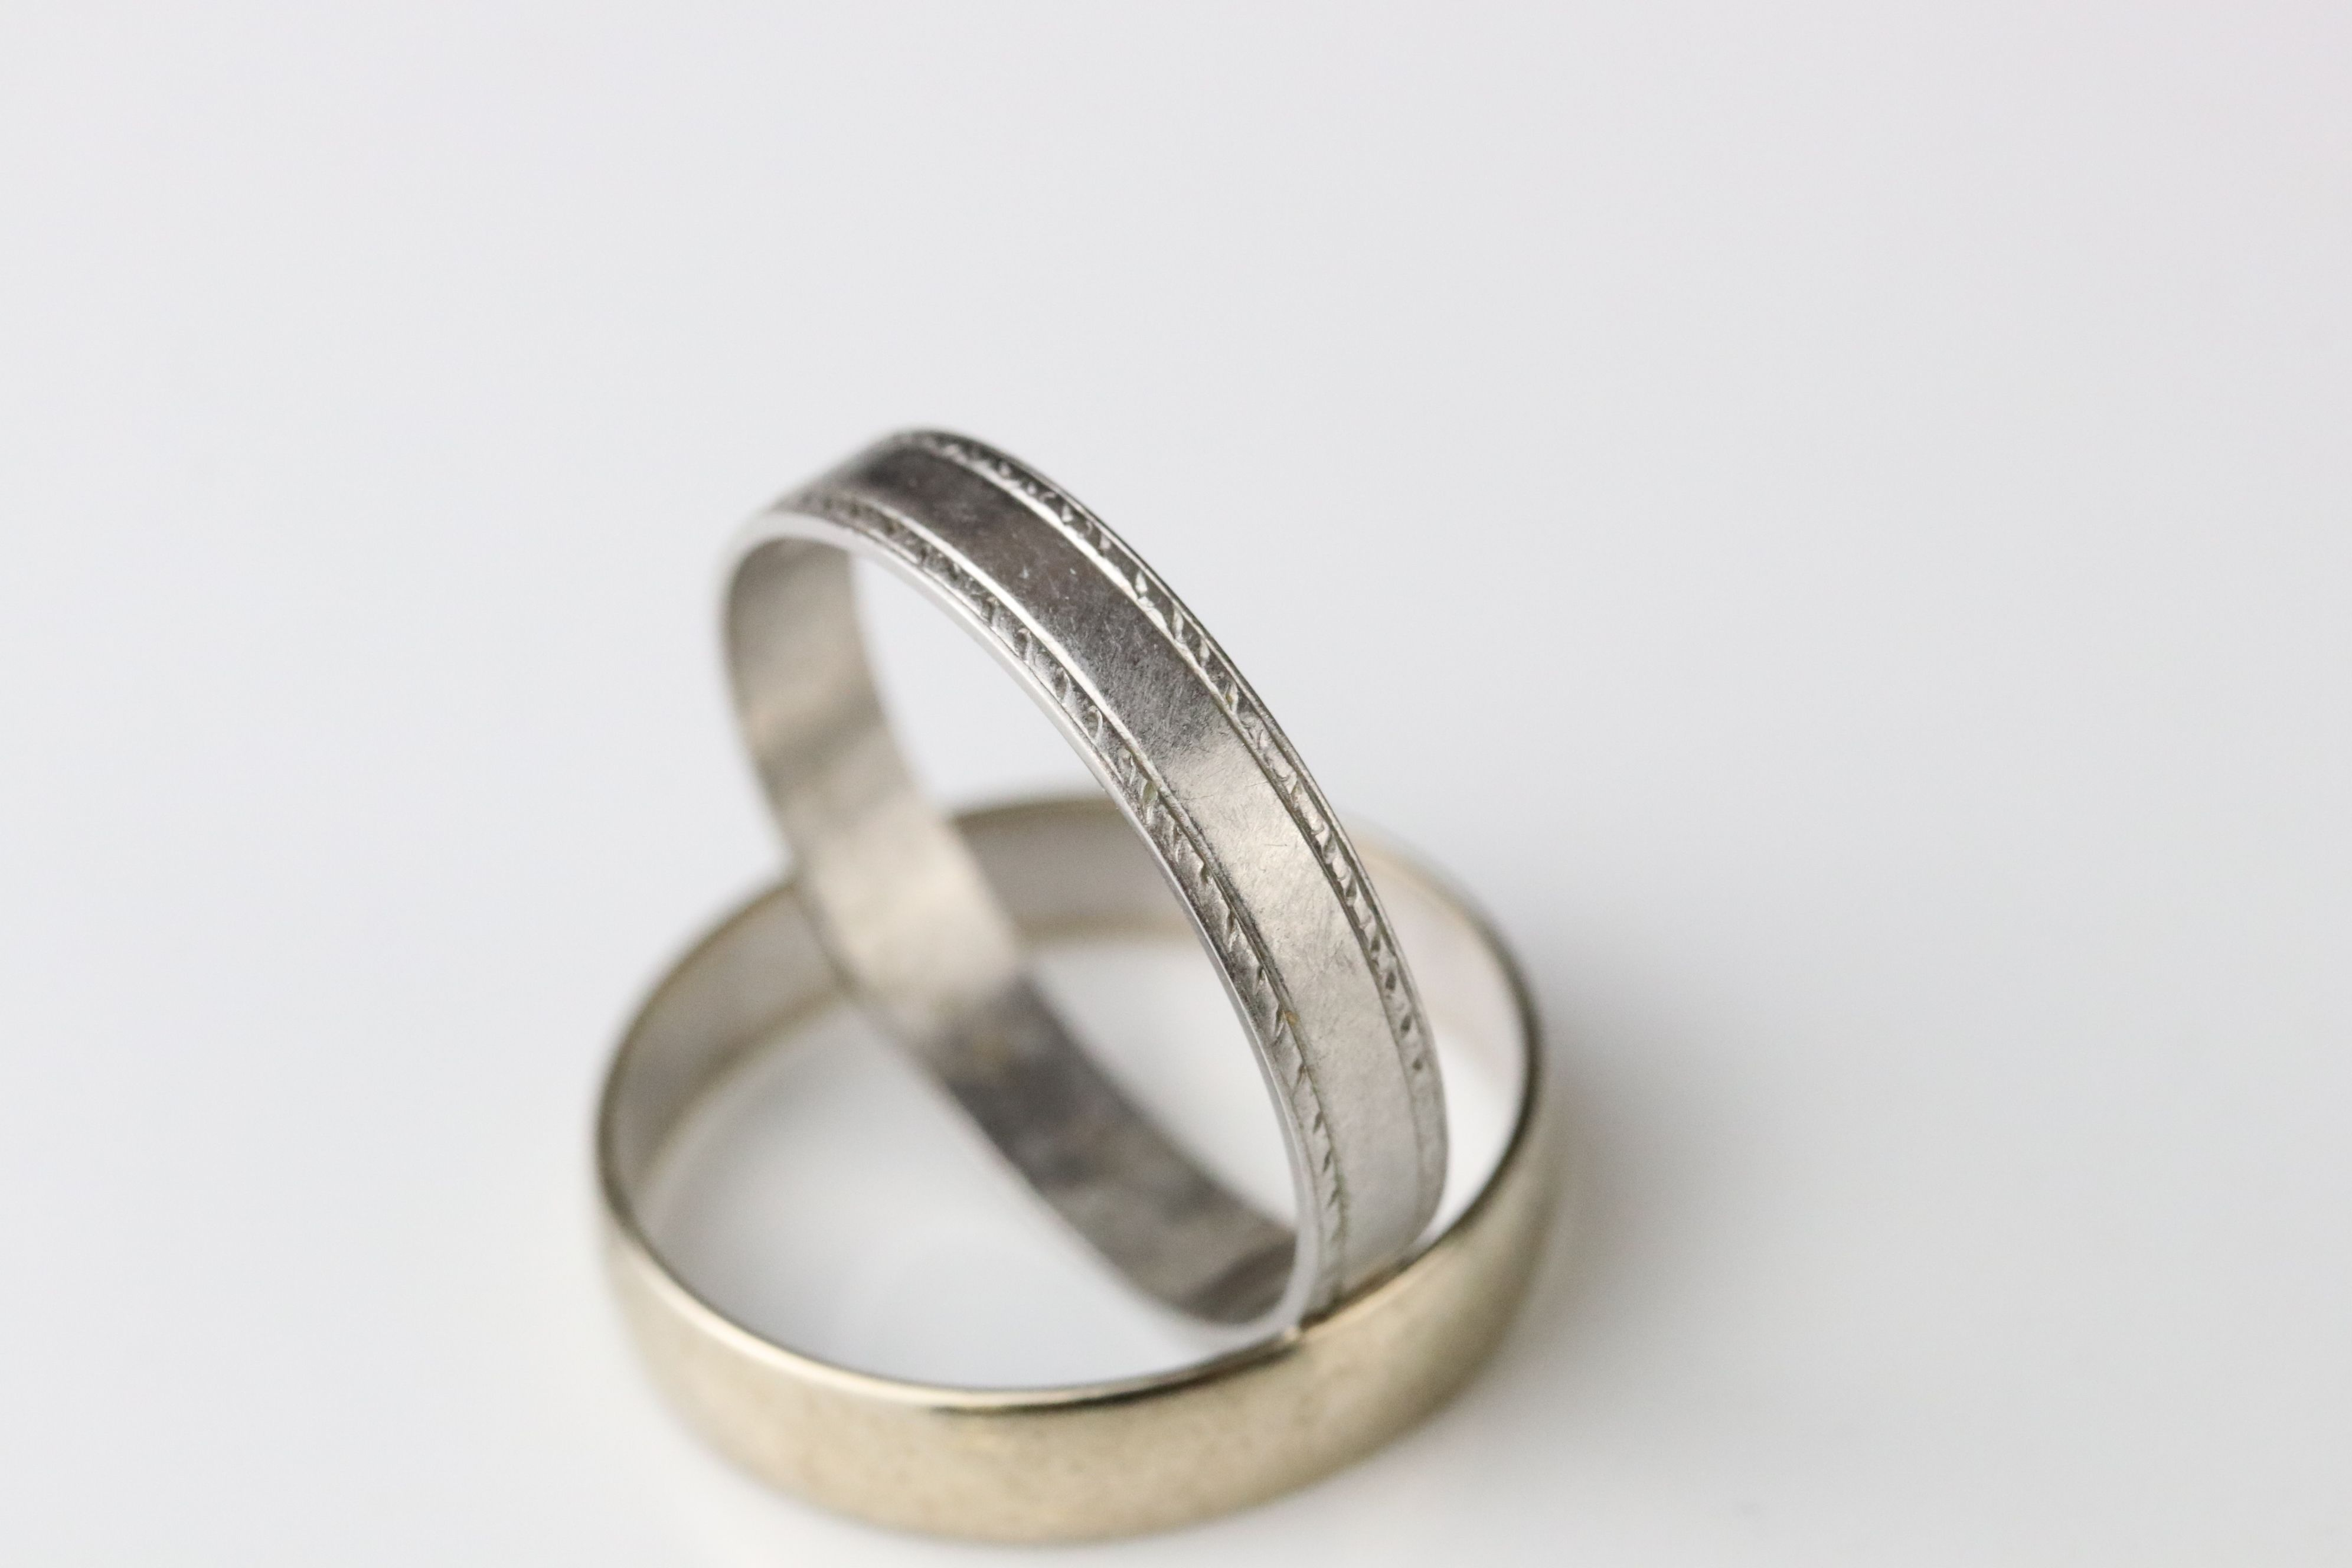 9ct white gold plain polished wedding band, width approx 4mm, ring size R (needs rhodium plating) - Image 2 of 5